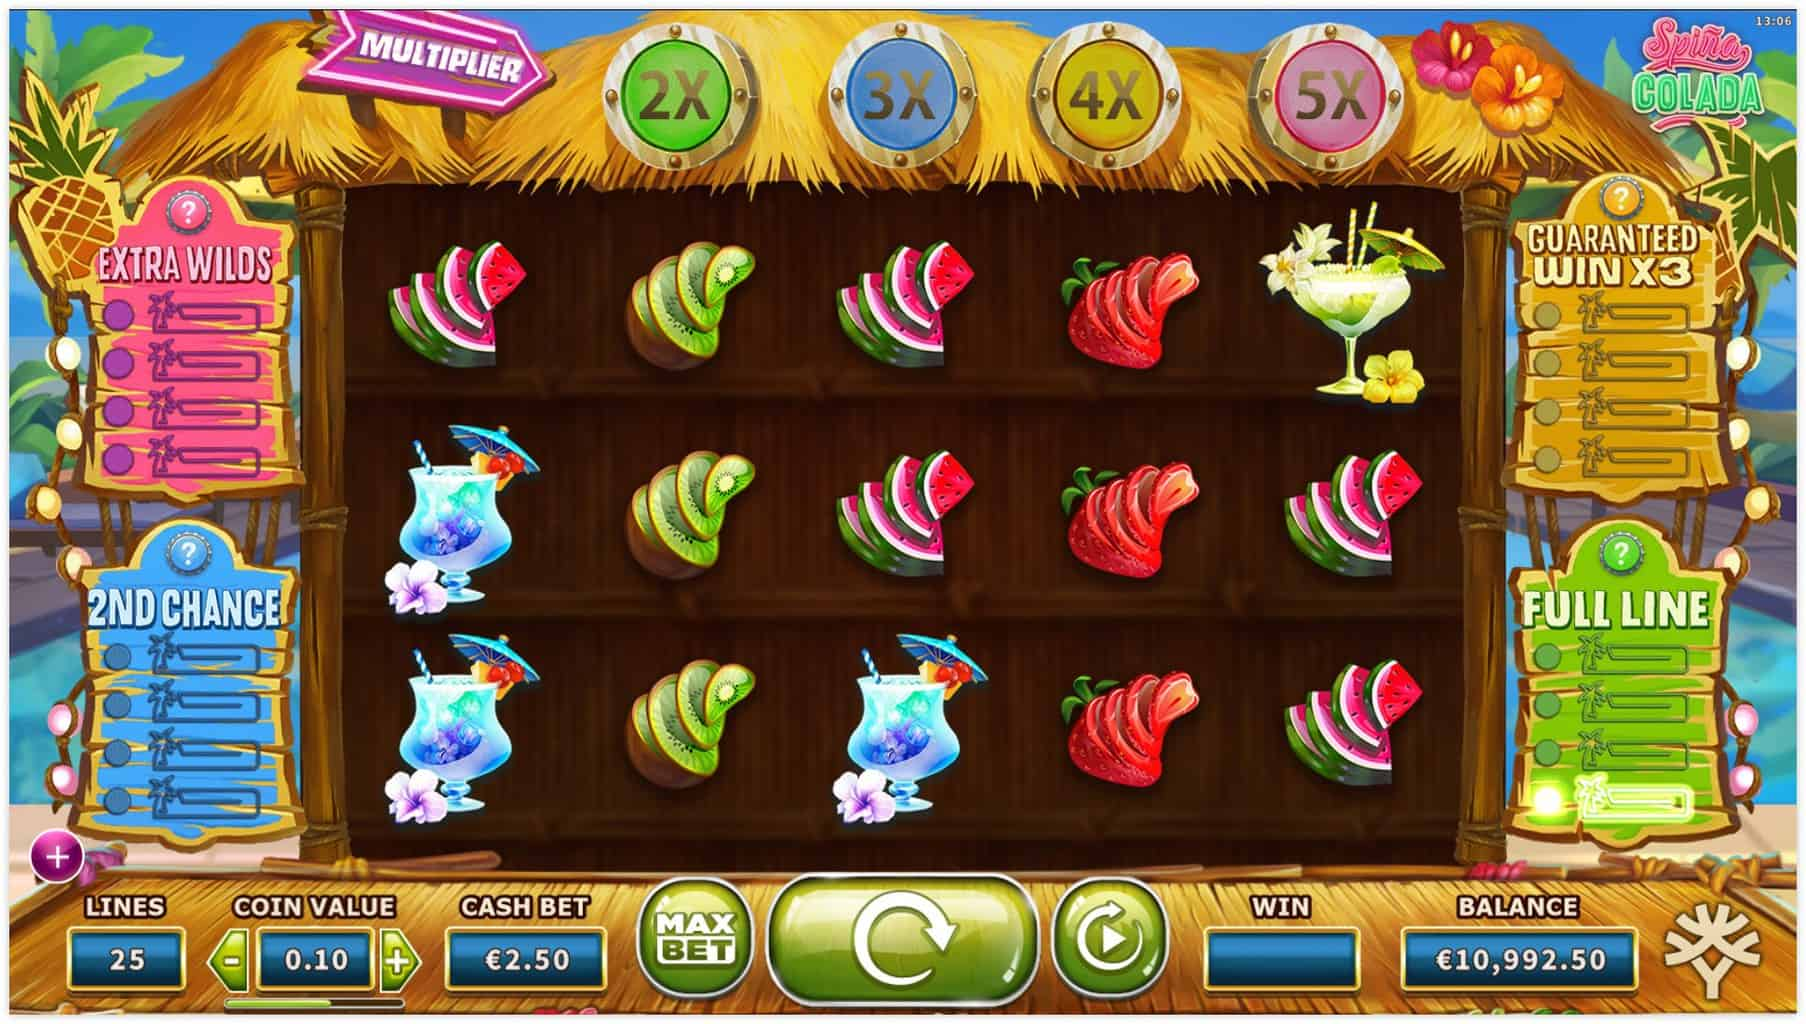 Yggdrasil - Spina Colada - Reels - casinogroundsdotcom